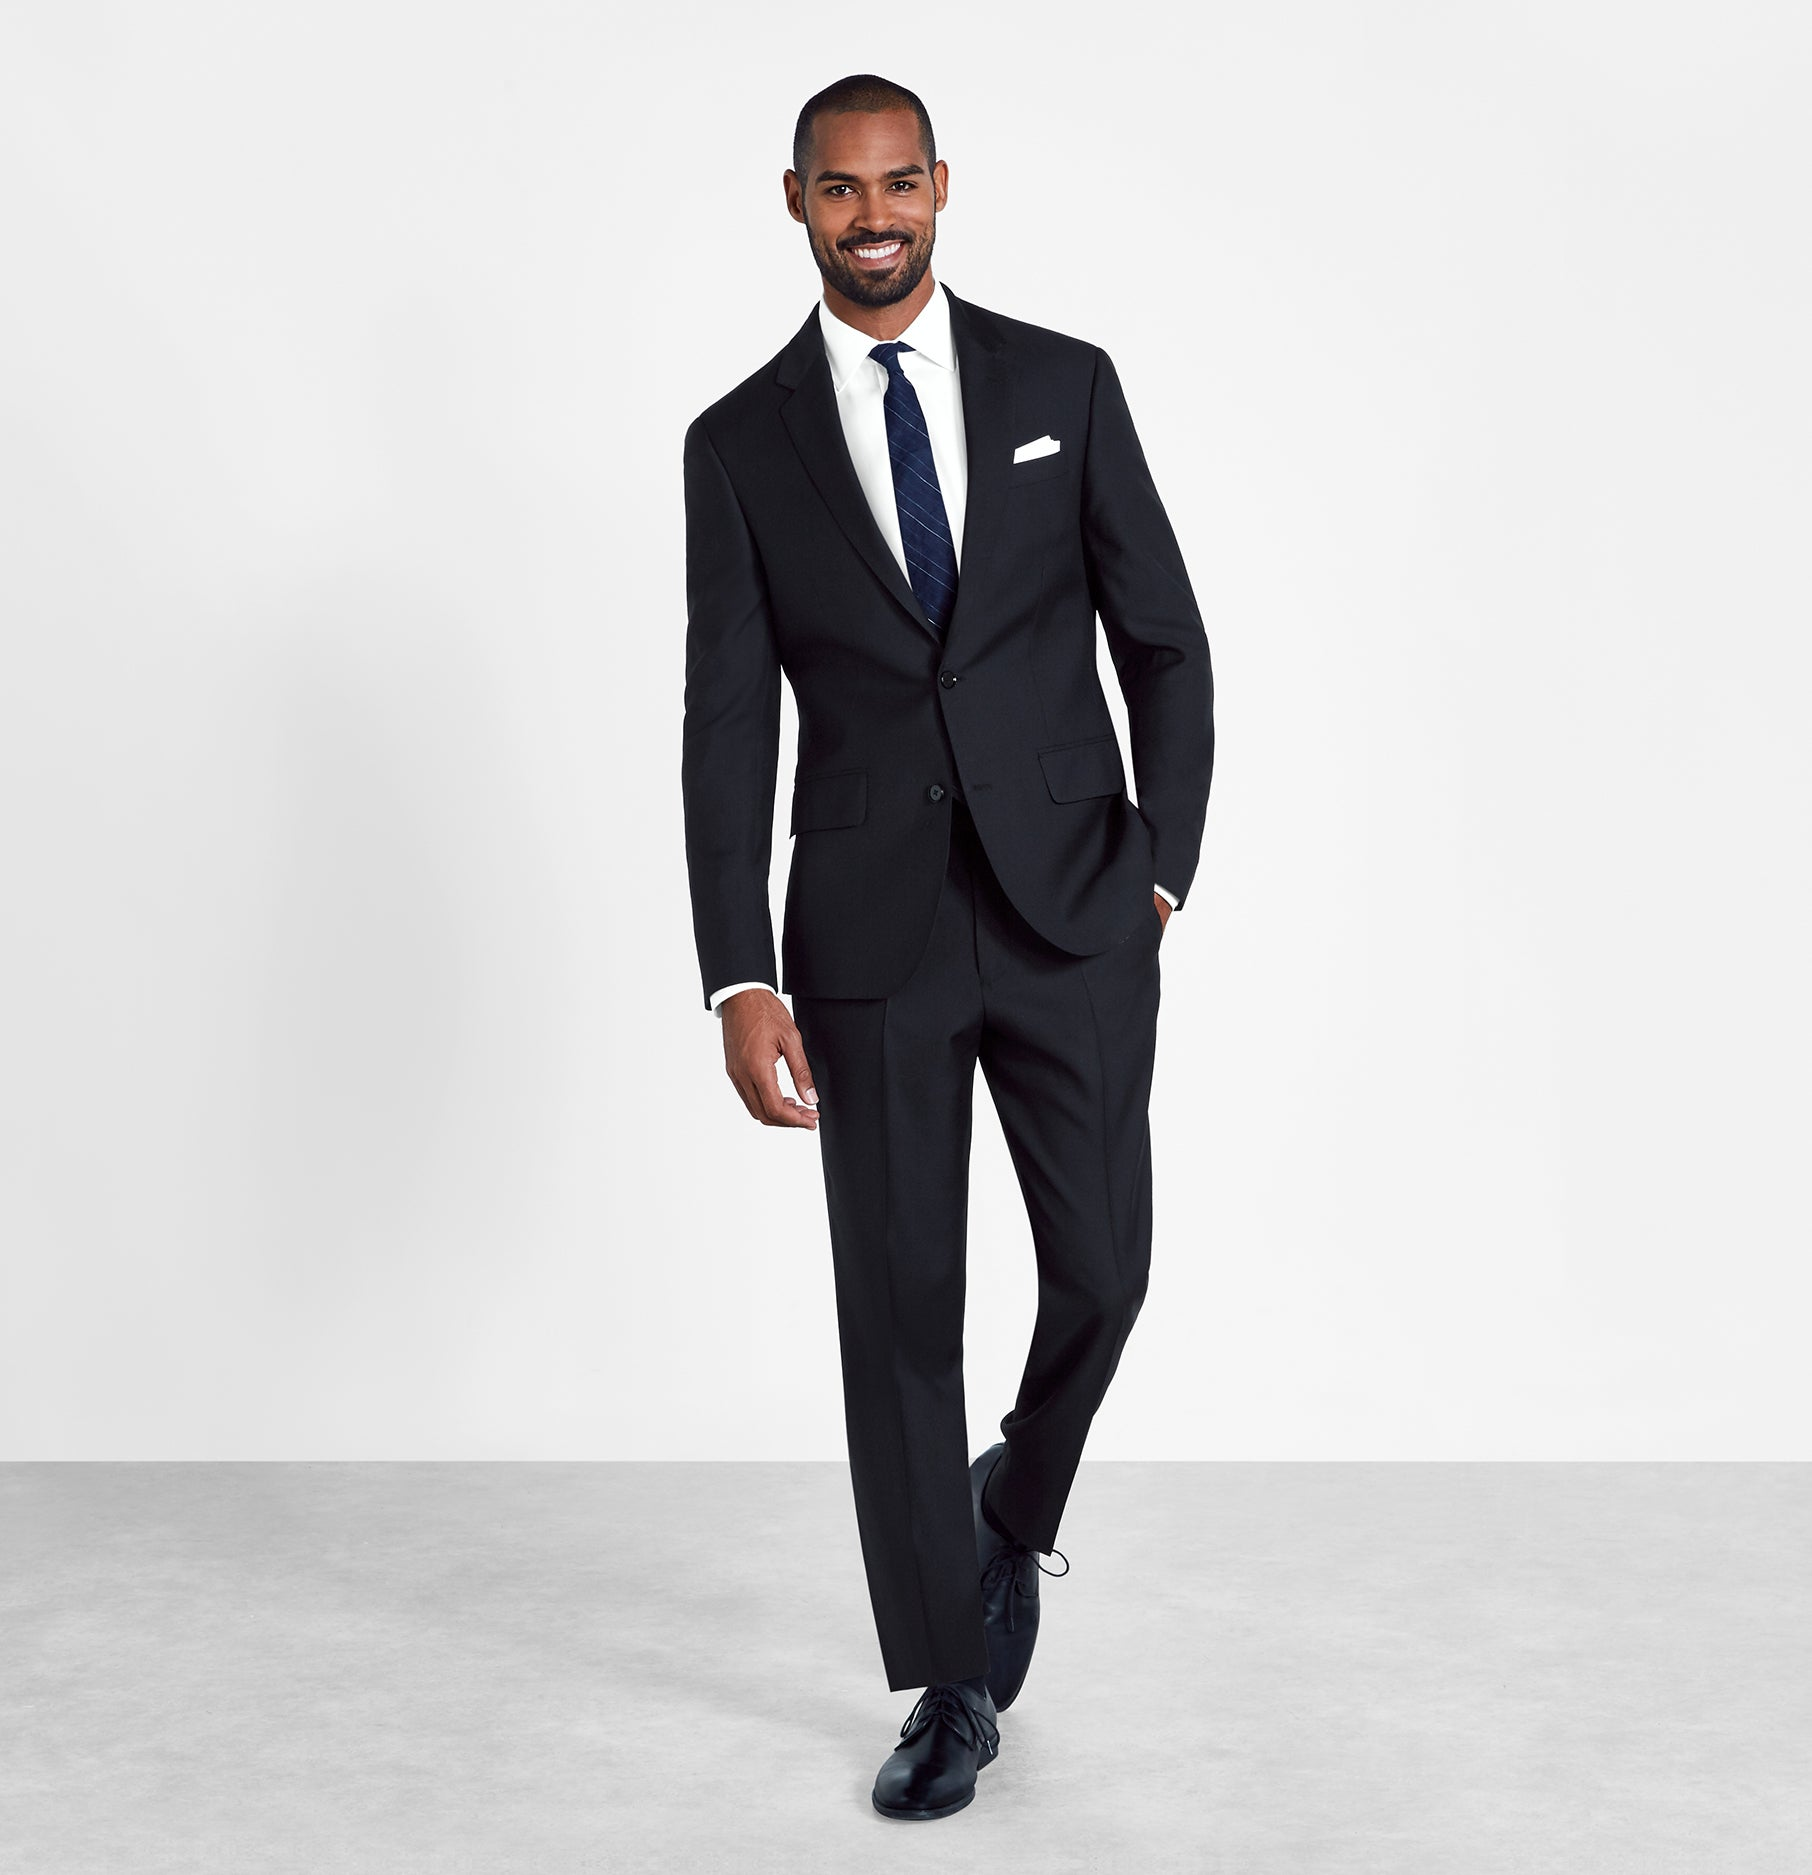 K'Mich Weddings - wedding planning - blk tux rental